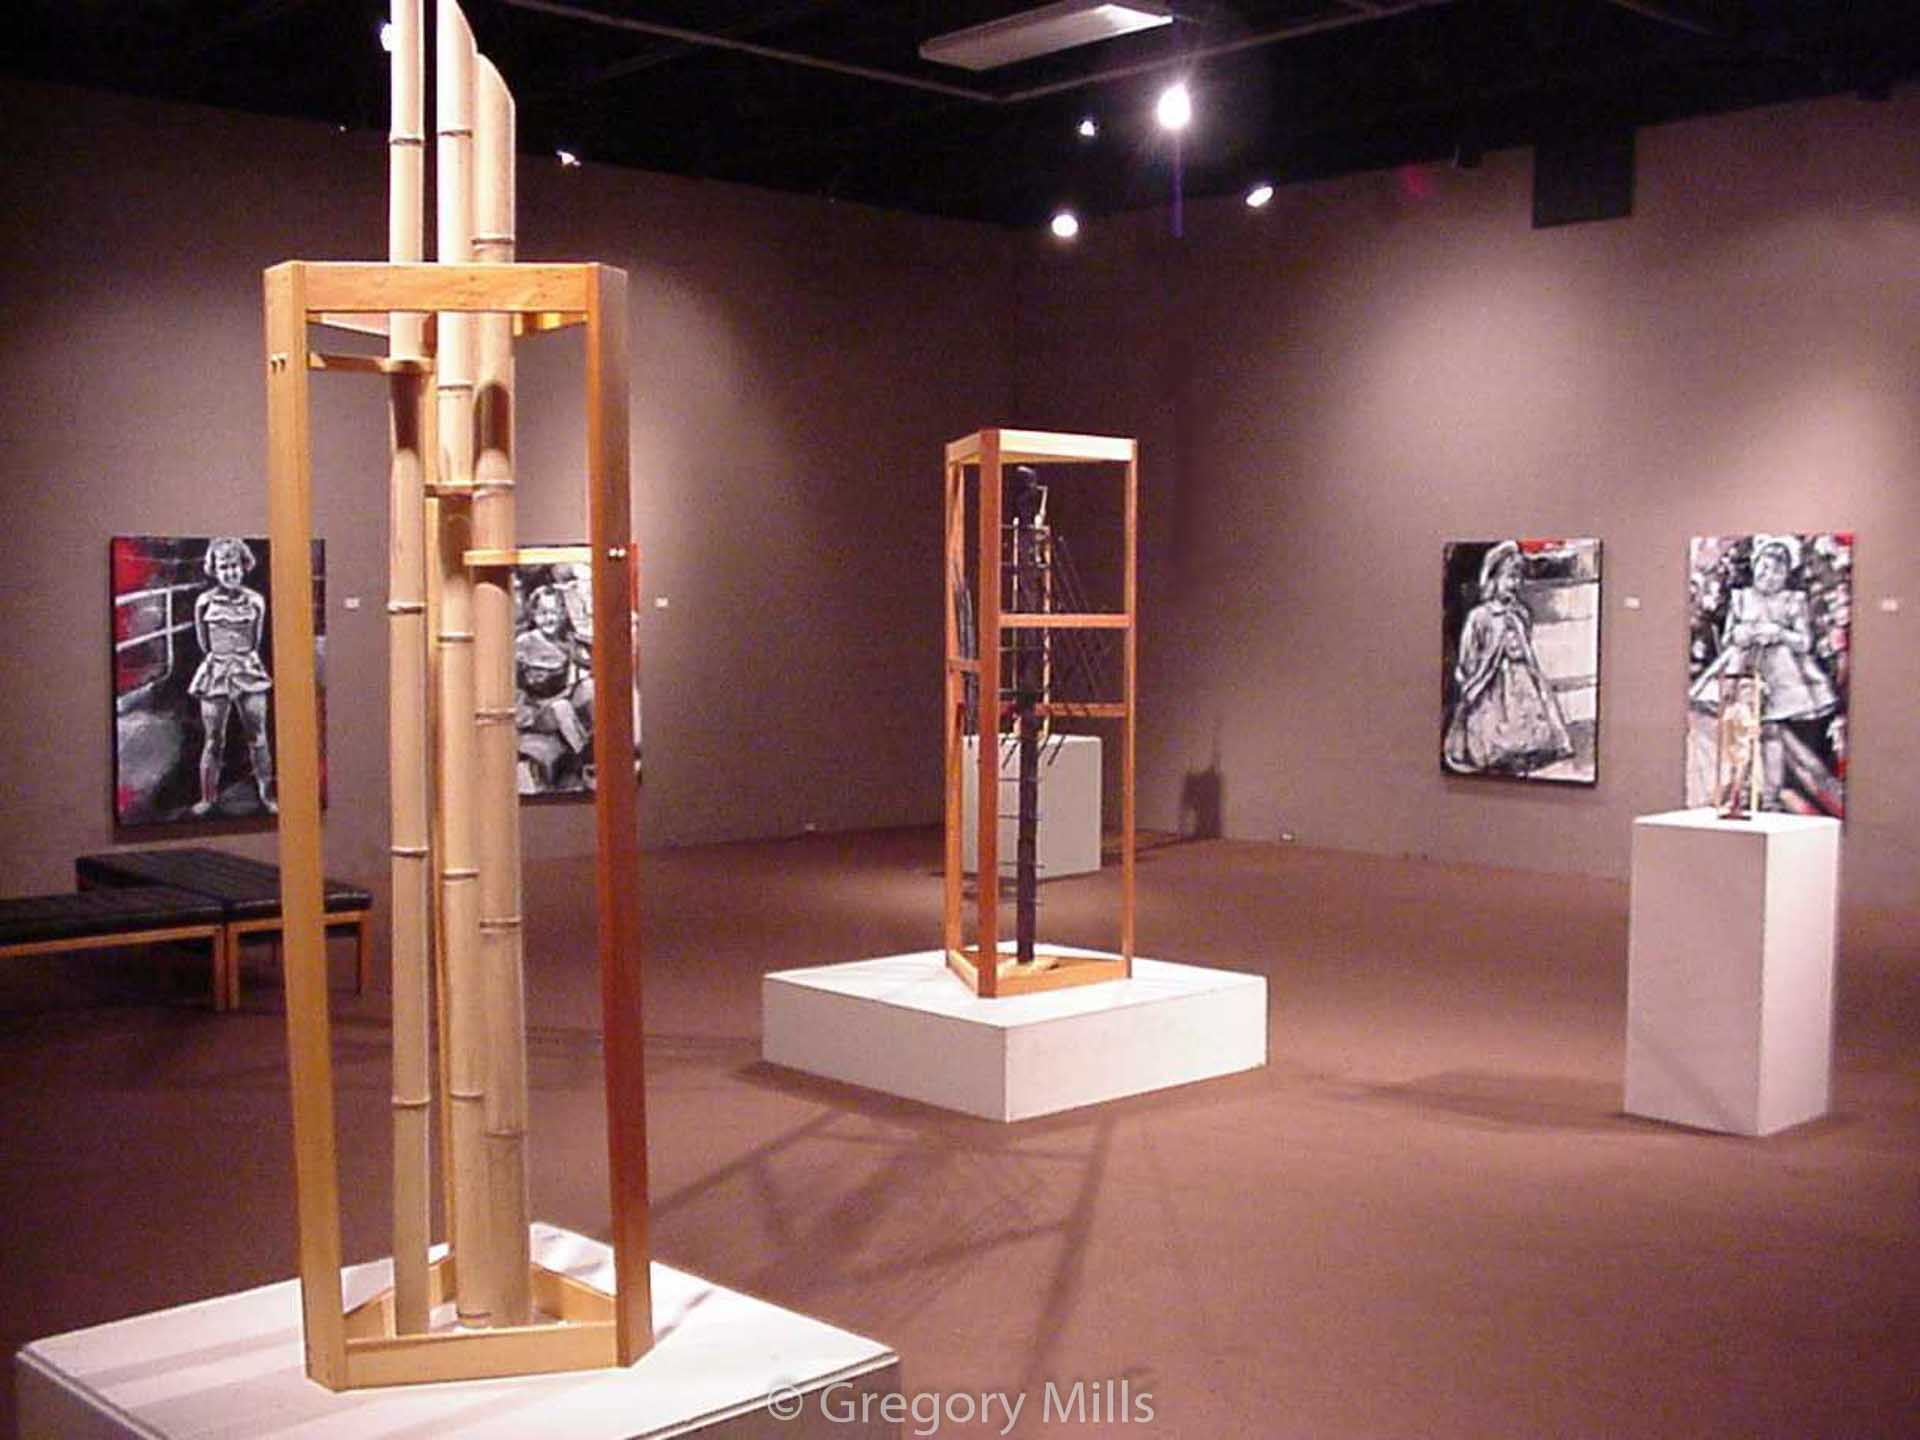 Photos of Exhibit of sculptures by Gregory Mills and paintings by another artist. This is his oldest digital photo from 1999 and a whopping 1.1 megapixels.